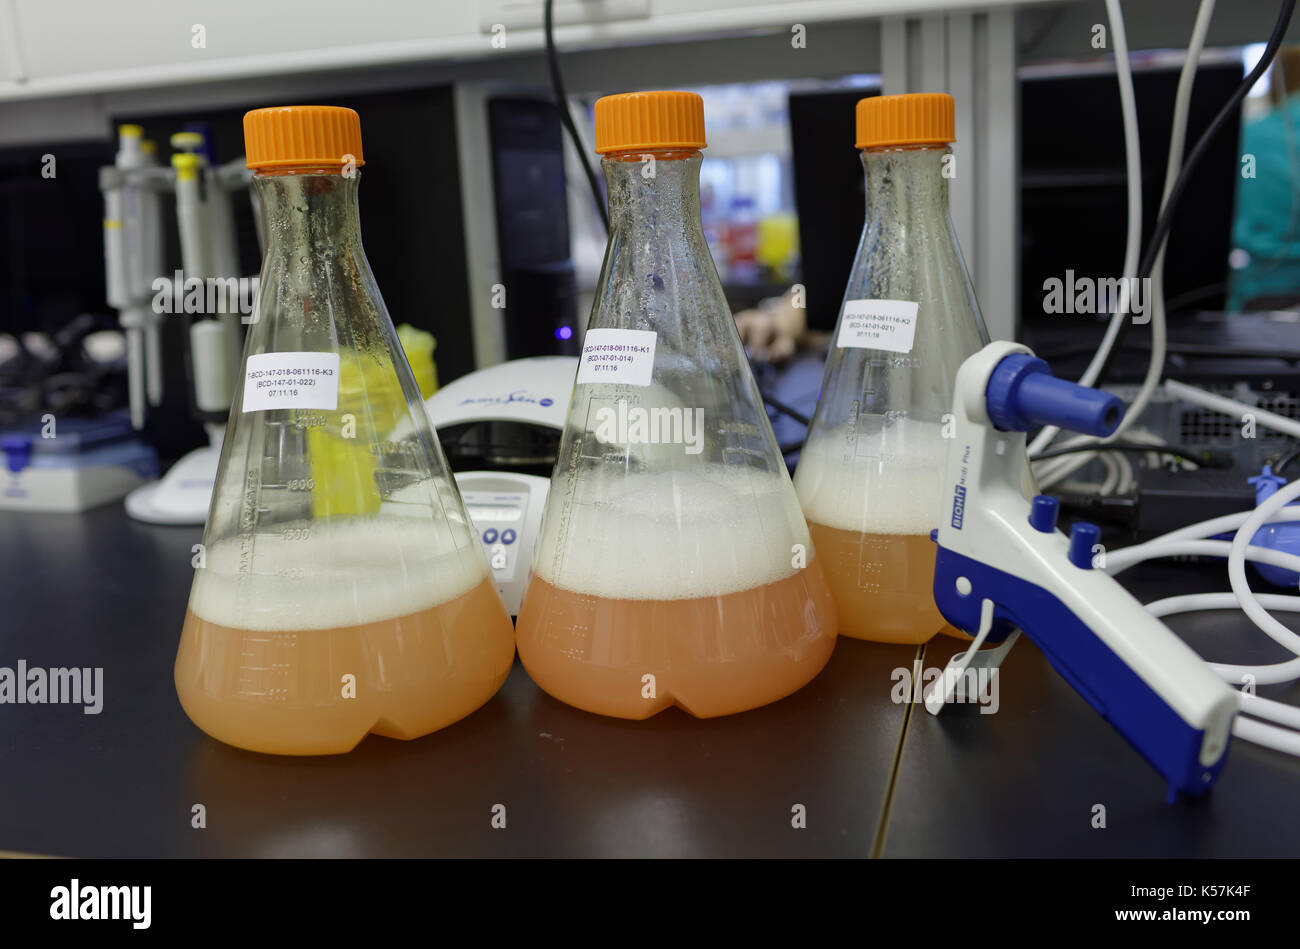 St. Petersburg, Russia - November 16, 2016: Flasks with culture liquids in the High-Throughput Biotechnology Laboratory of BIOCAD. It is one of the wo - Stock Image